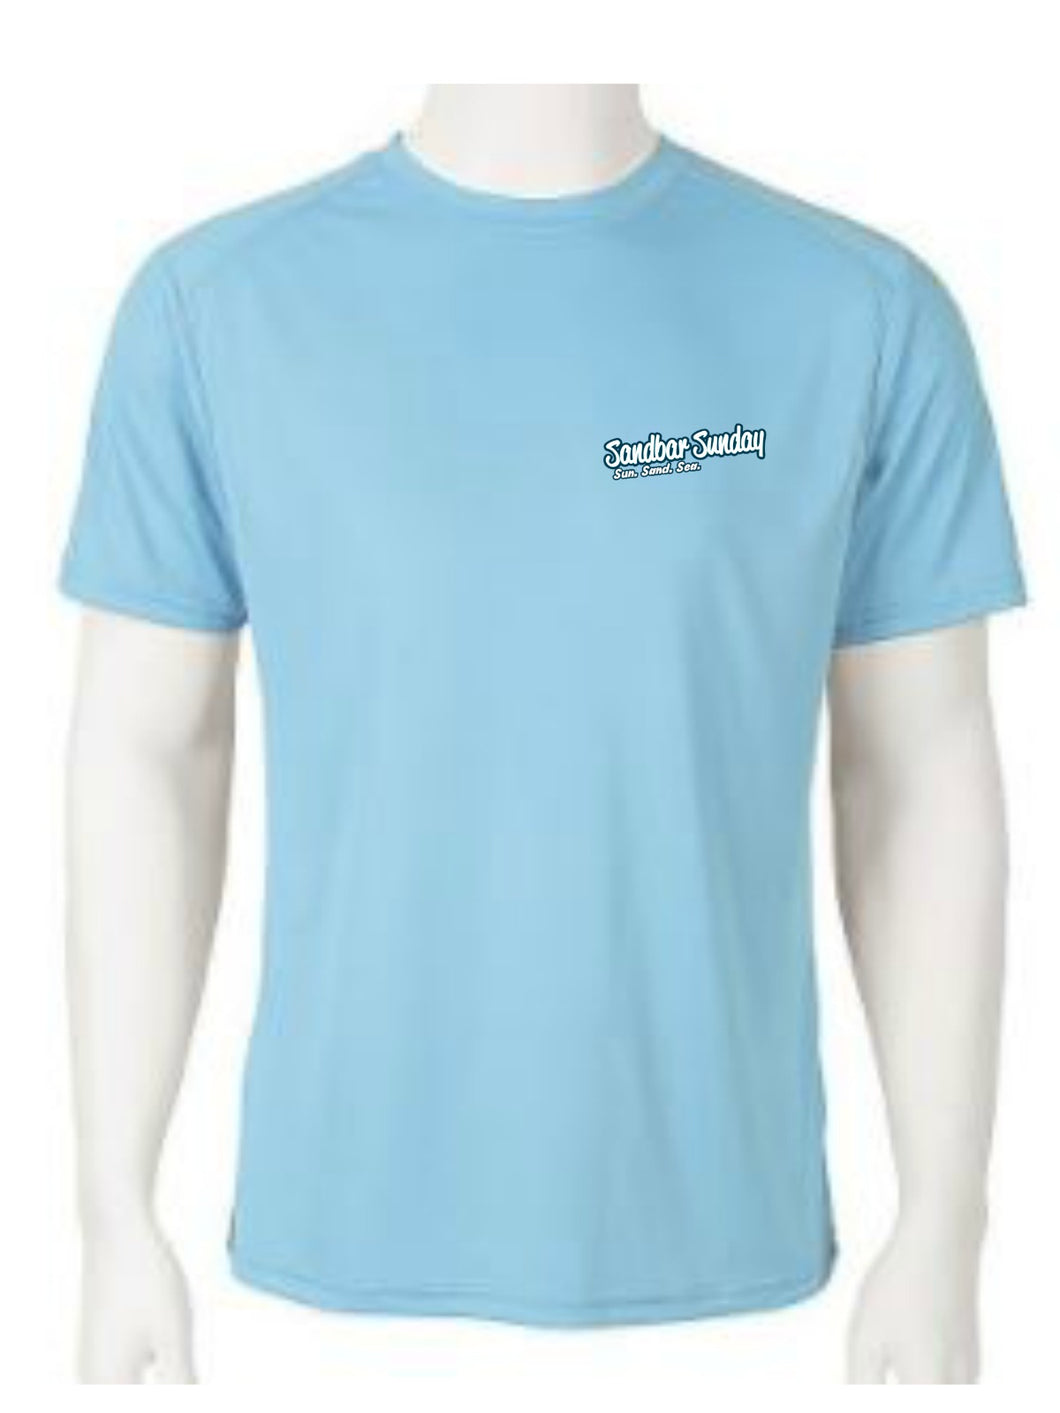 Short Sleeve Performance Tee (S.I.) - Aqua